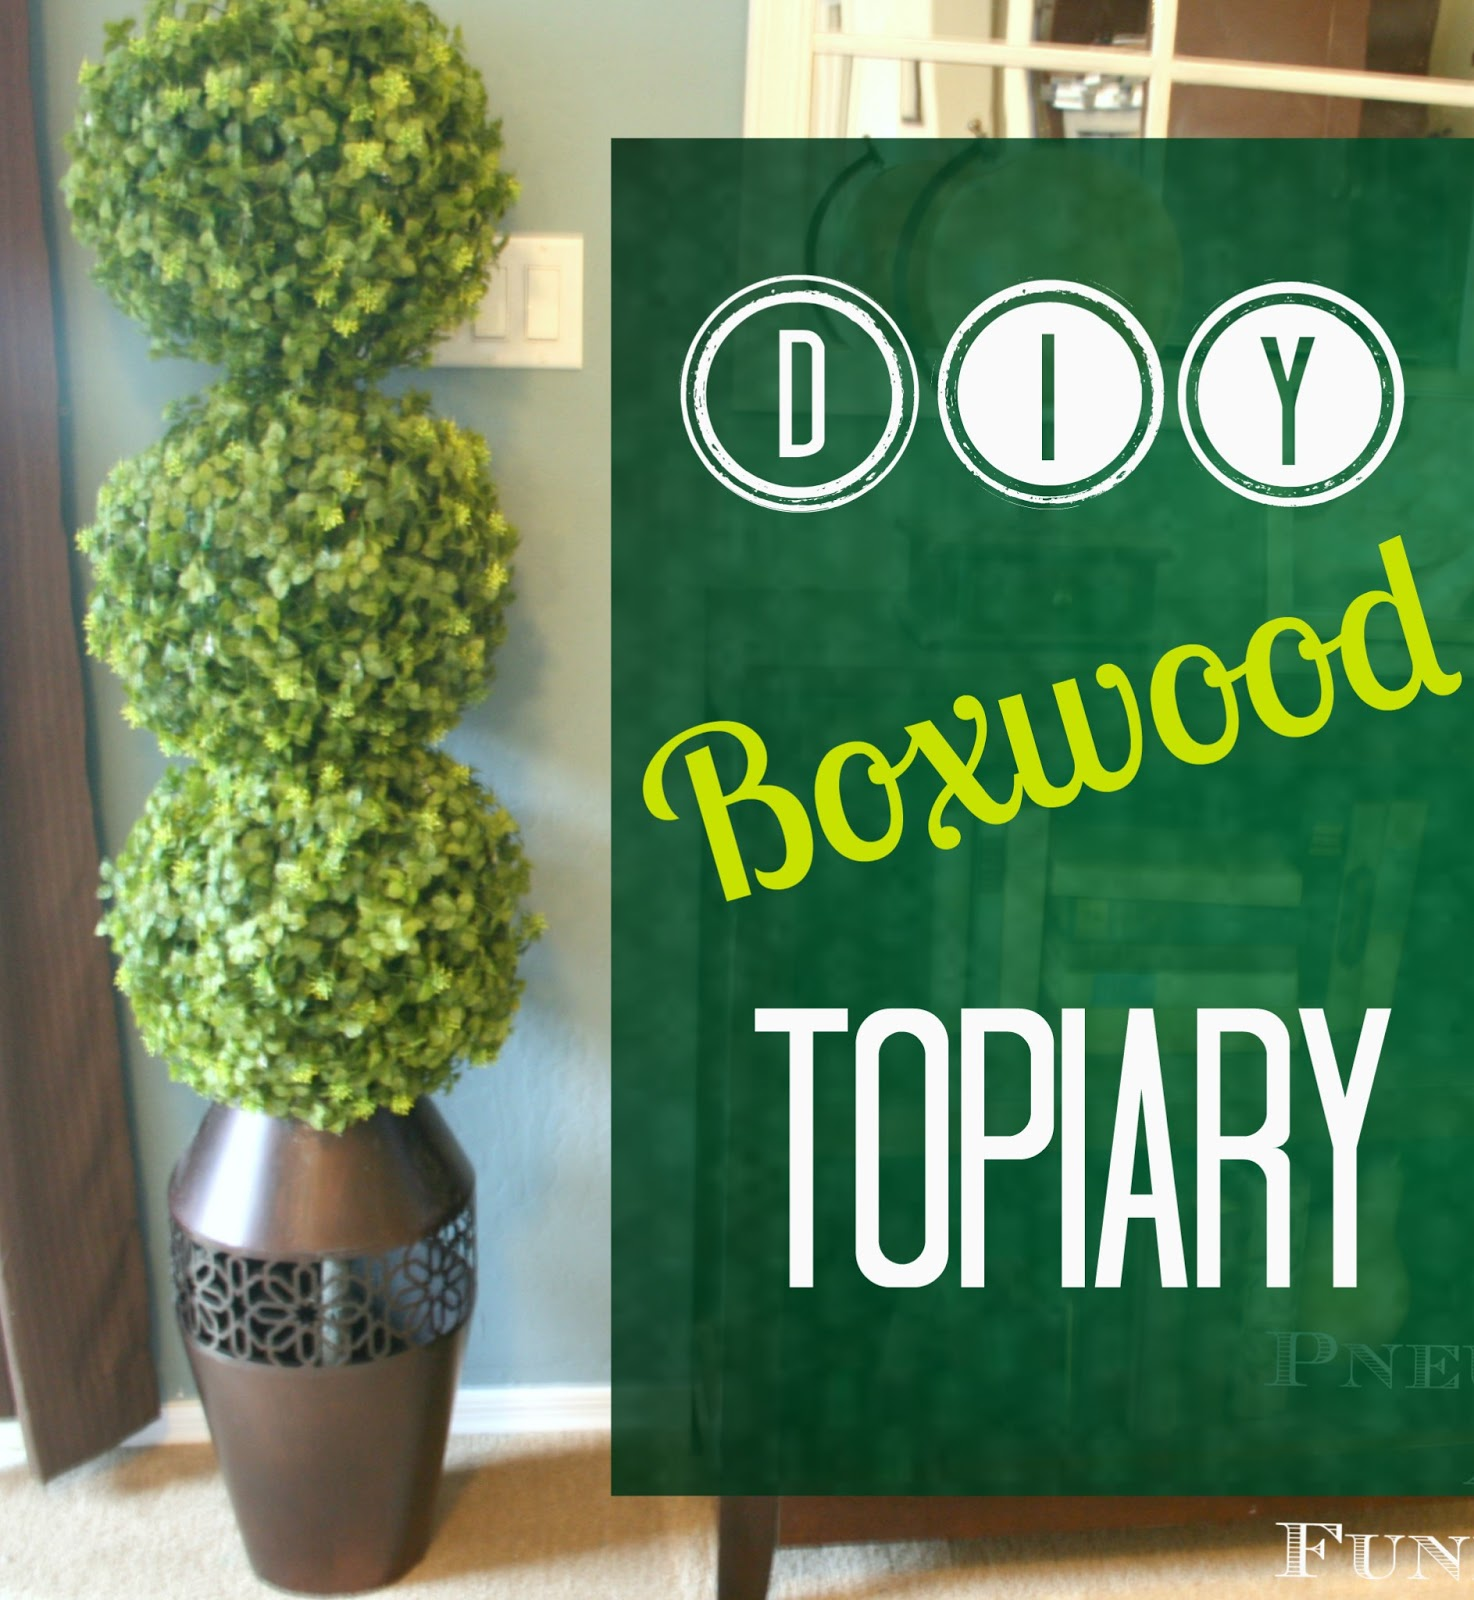 i love boxwood topiaries dried fresh plastic you name it i love the look i like the organic element it brings indoors while looking polished